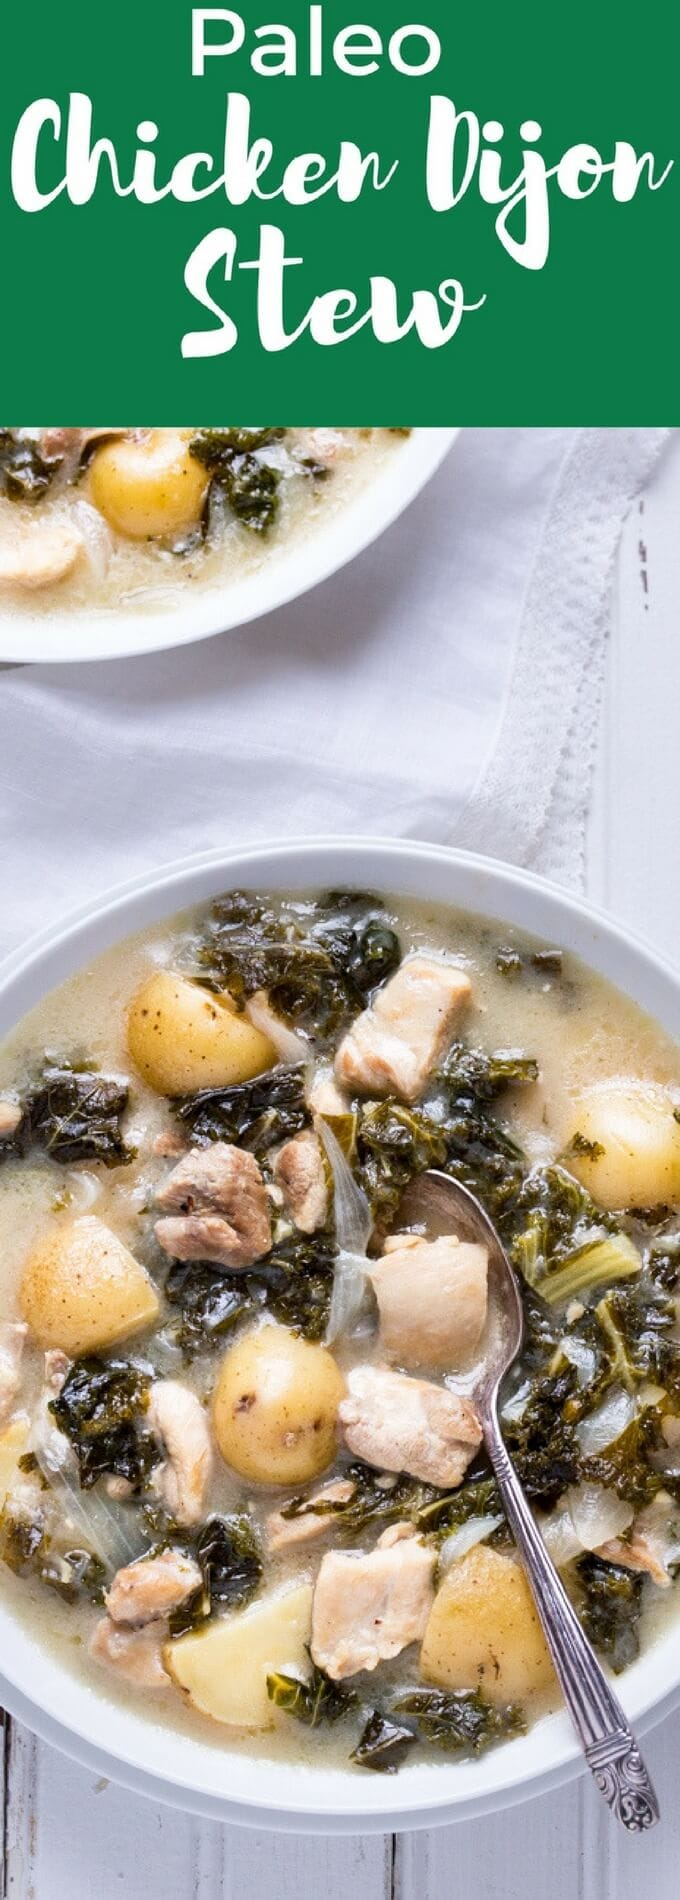 Paleo Chicken Stew with Kale and Potatoes - So simple to make and with ingredients you can find anywhere! Perfect comfort food your whole family will love! | gluten free | paleo | primal | dairy free |